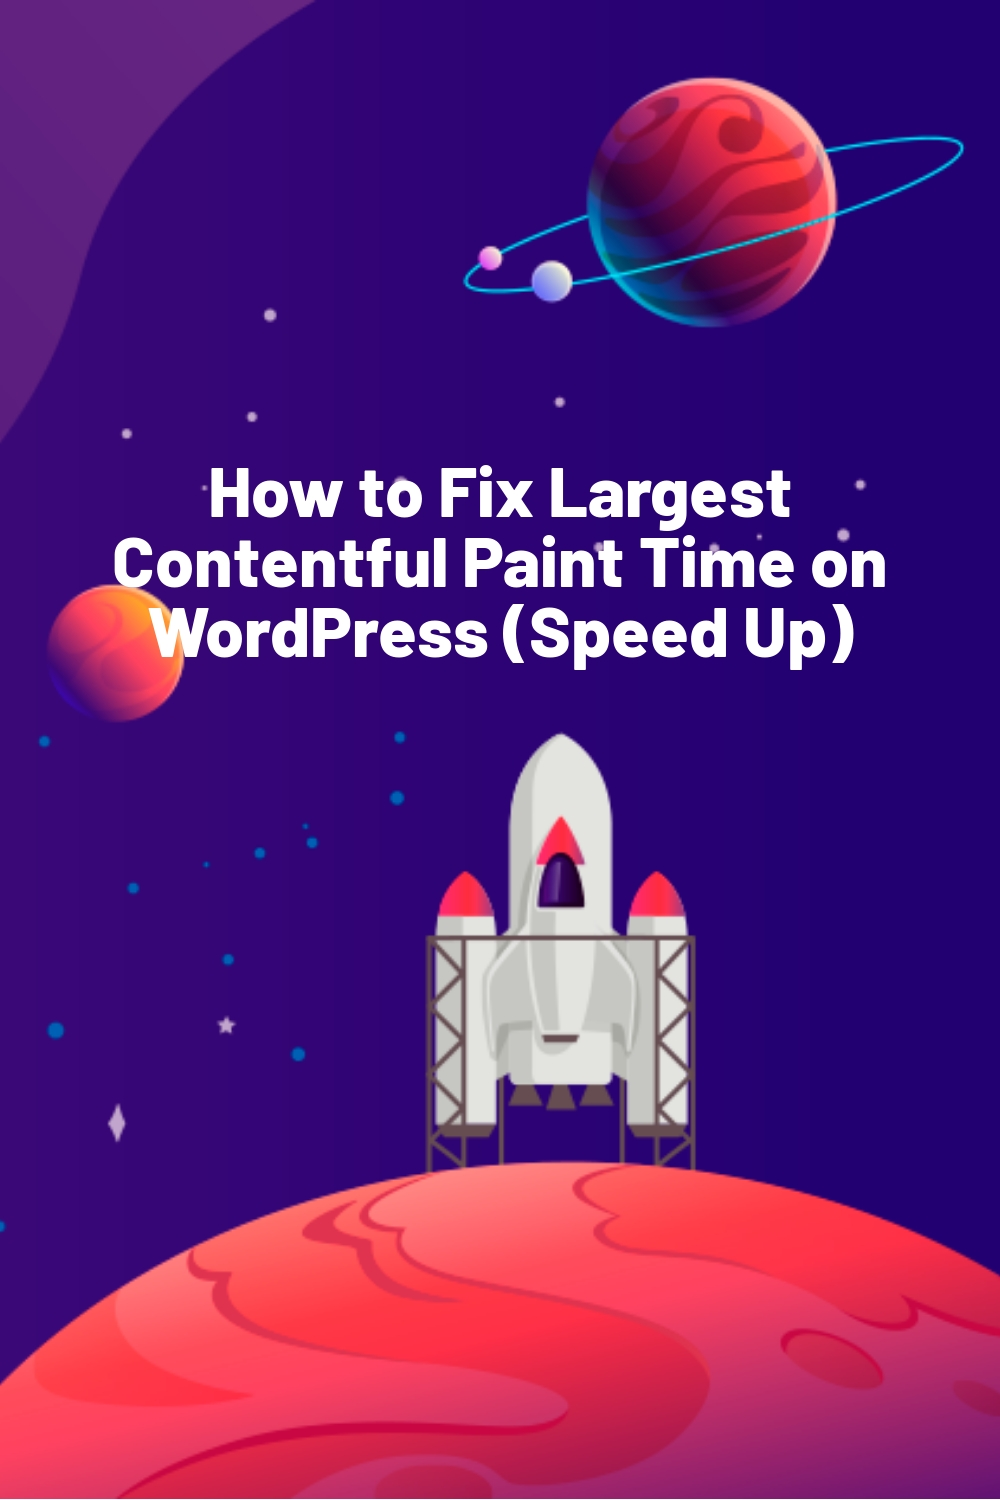 How to Fix Largest Contentful Paint Time on WordPress (Speed Up)